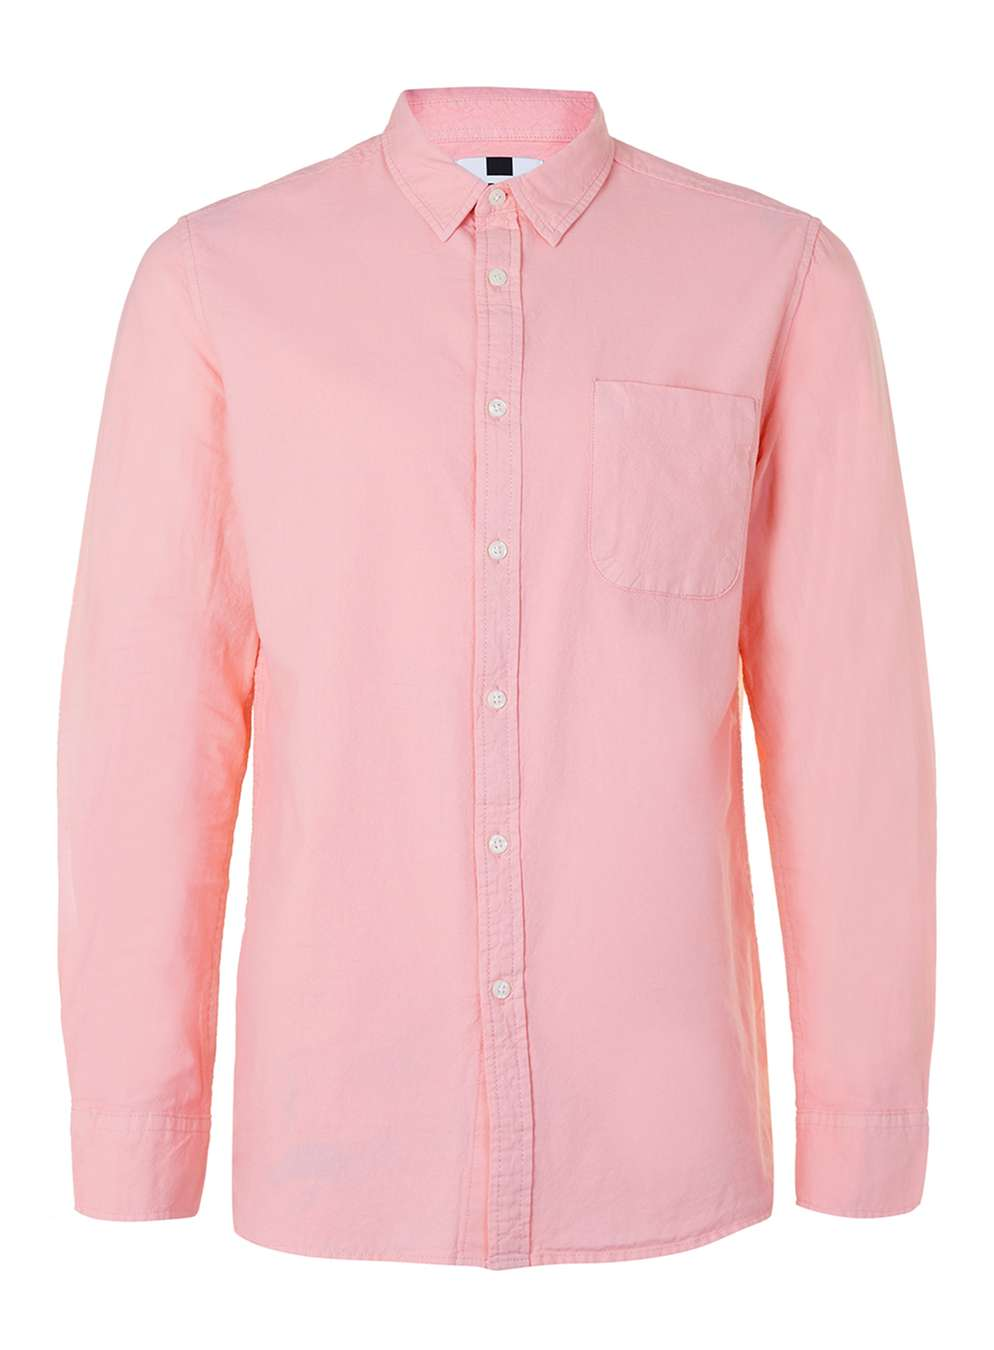 sam-c-perry-all-navy-pink-woven-topman-woven.jpg